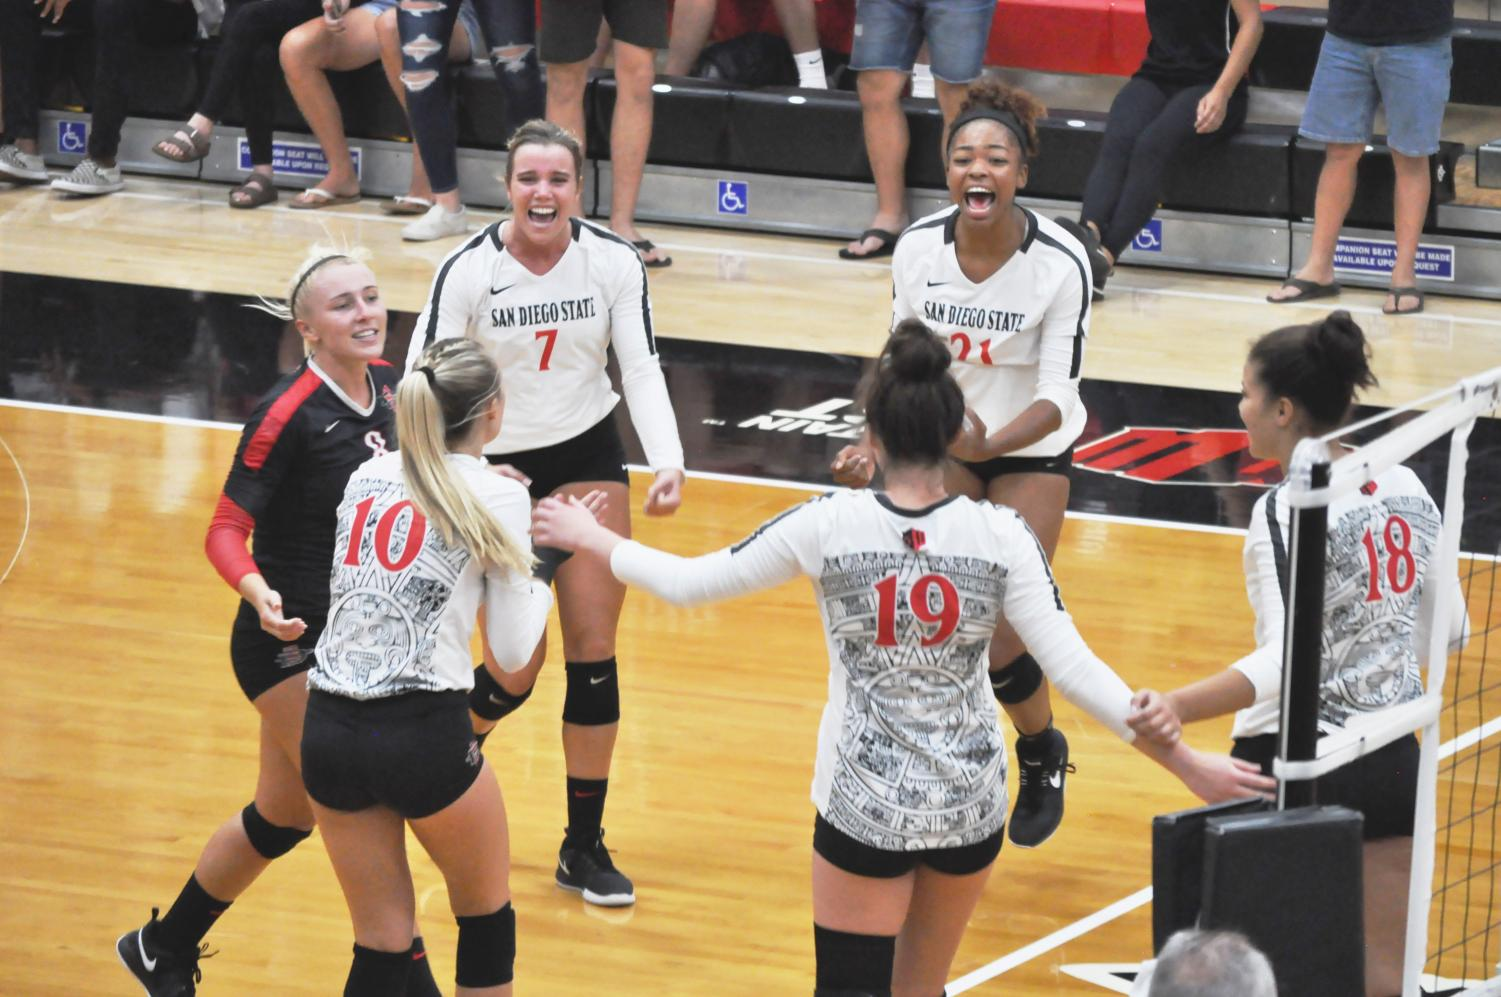 Senior outside hitter Hannah Turnlund (7) and sophomore outside hitter (21) celebrate an Aztec point during the Aztecs' 3-2 comeback victory over West Virginia on Sept. 6 at Peterson Gym.